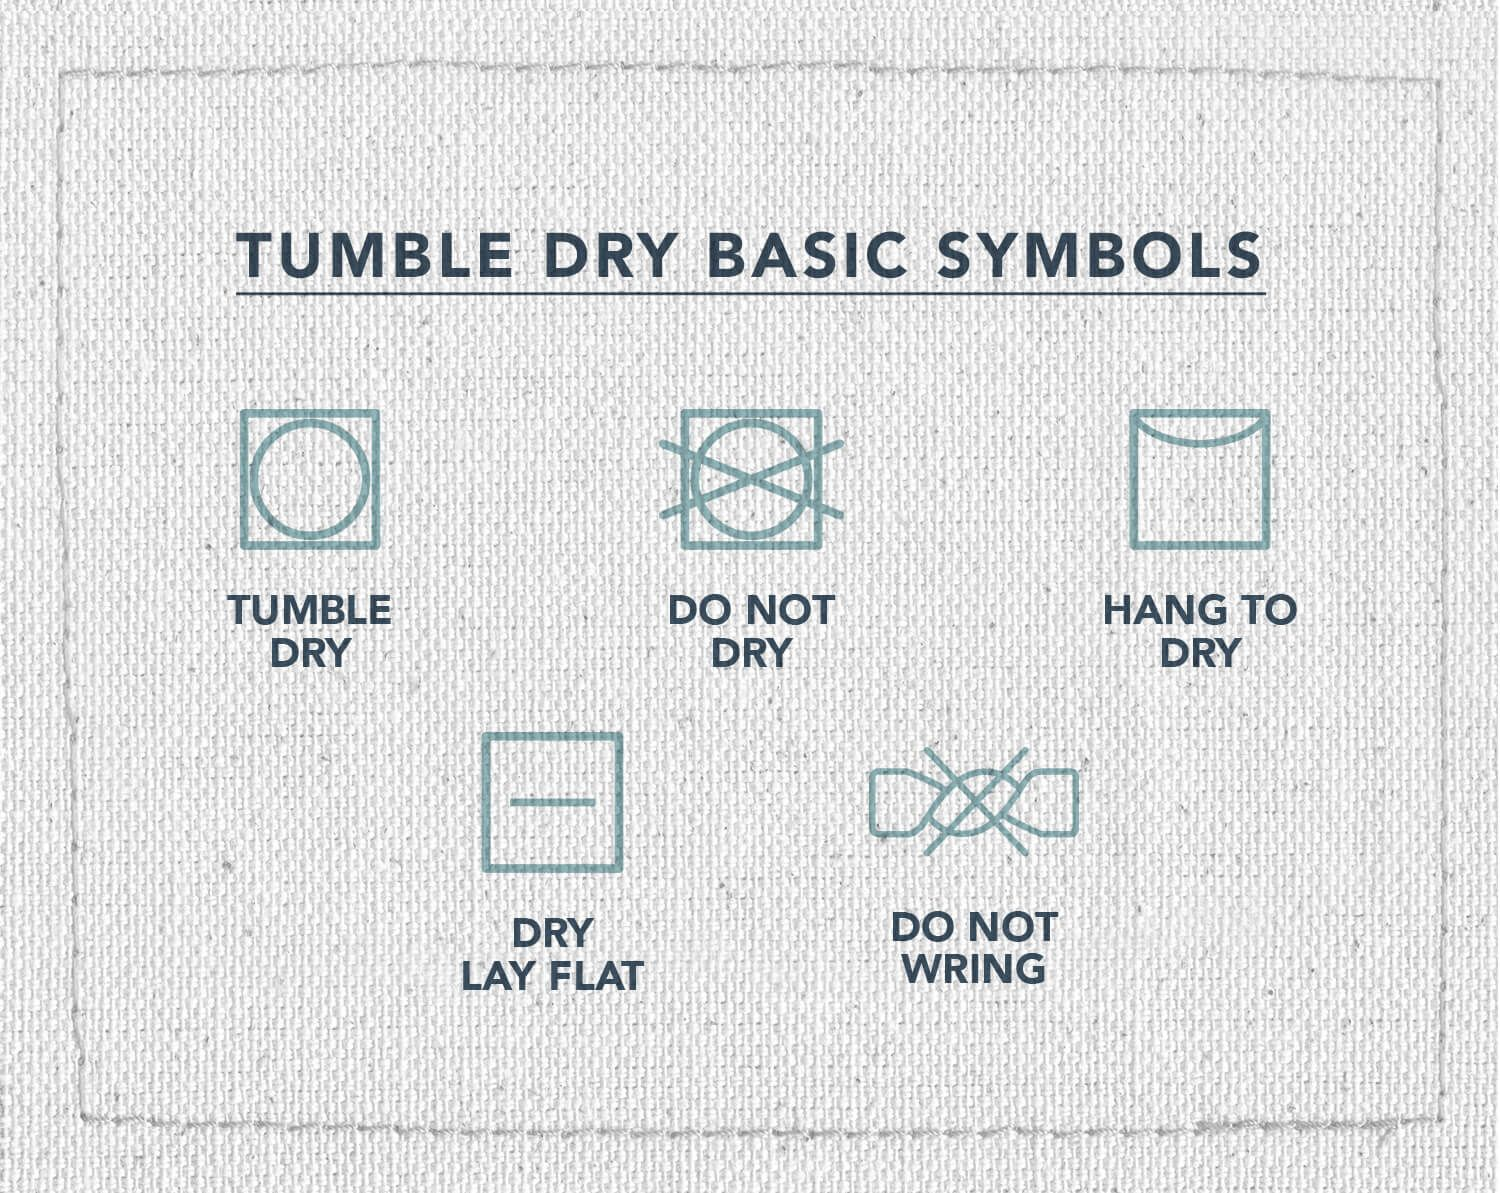 An infographic of five laundry care symbols, indicating what symbol means how to dry your clothes, tumble dry, do not dry, hang to dry, dry lay flat, or do not wring